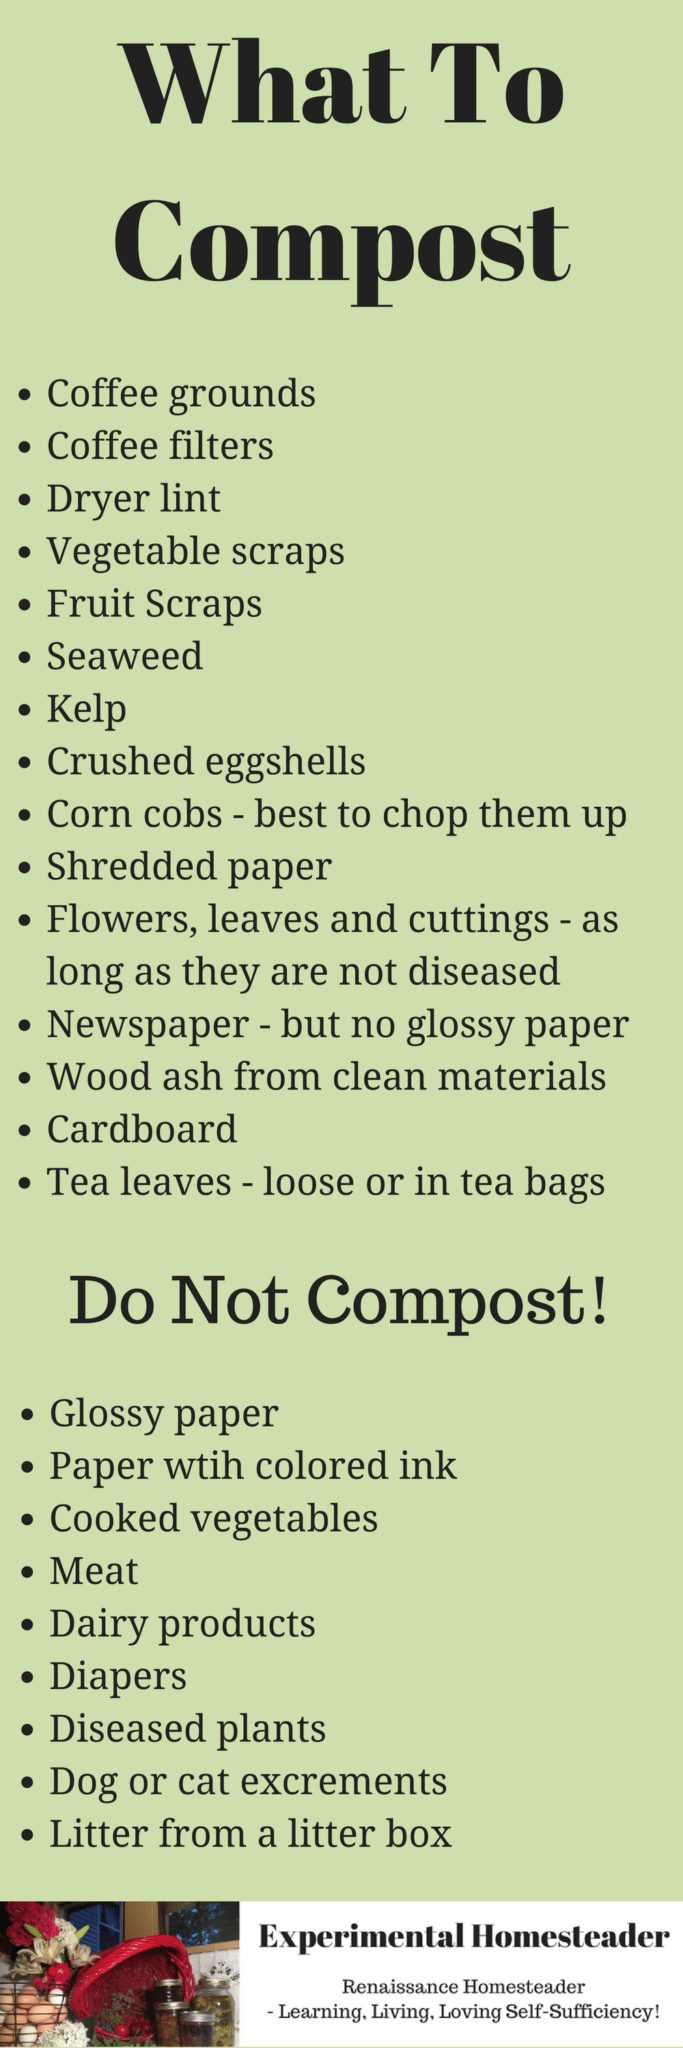 A printable list of what to compost.